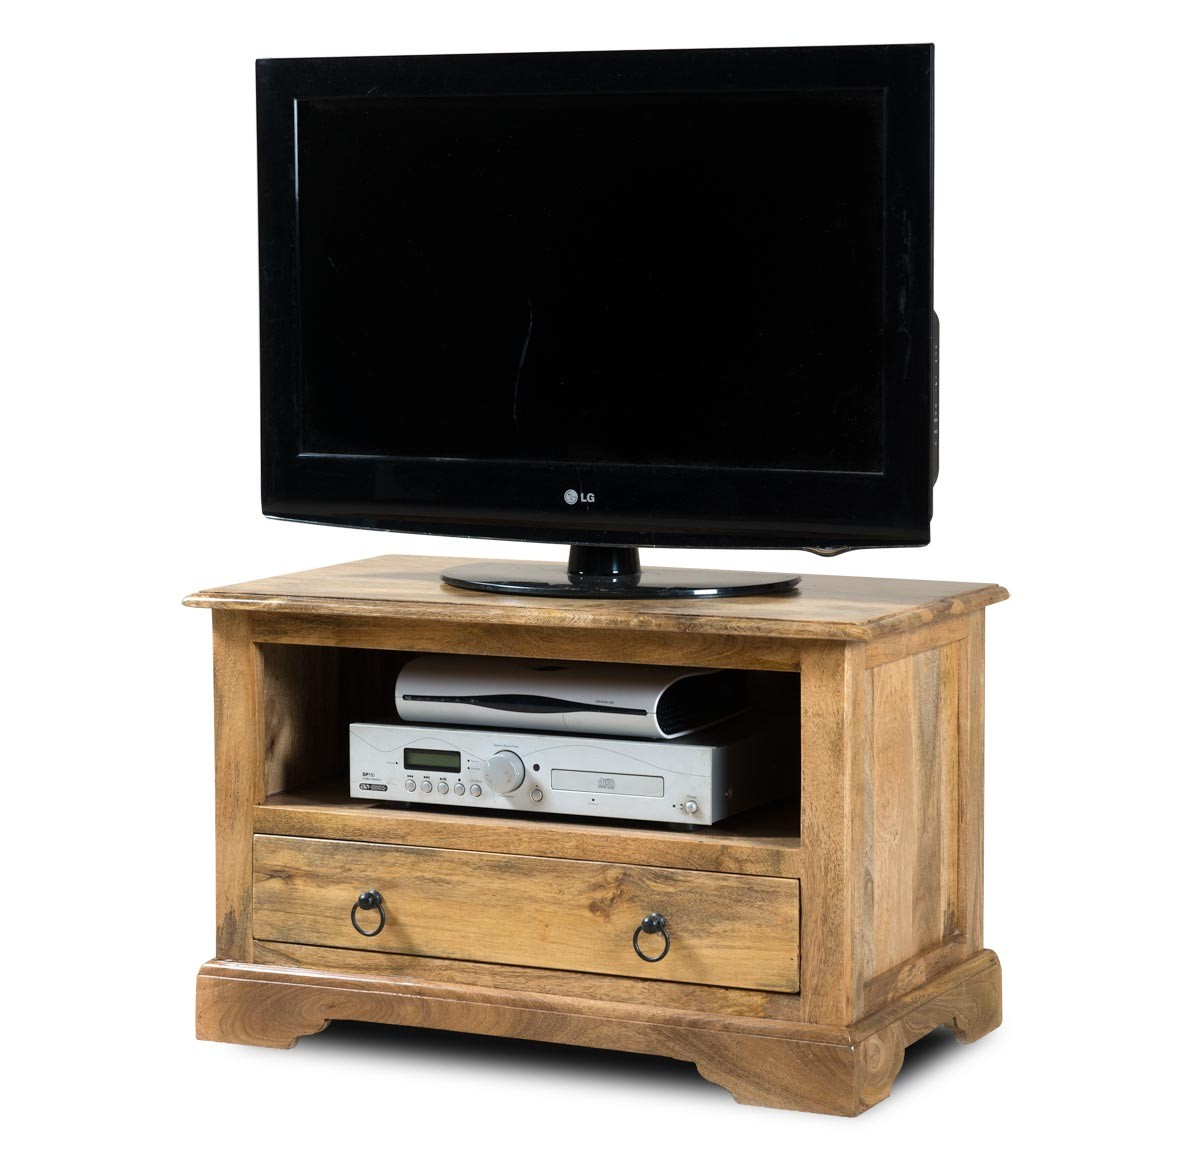 Image Result For Mango Wood And Stone Furniture